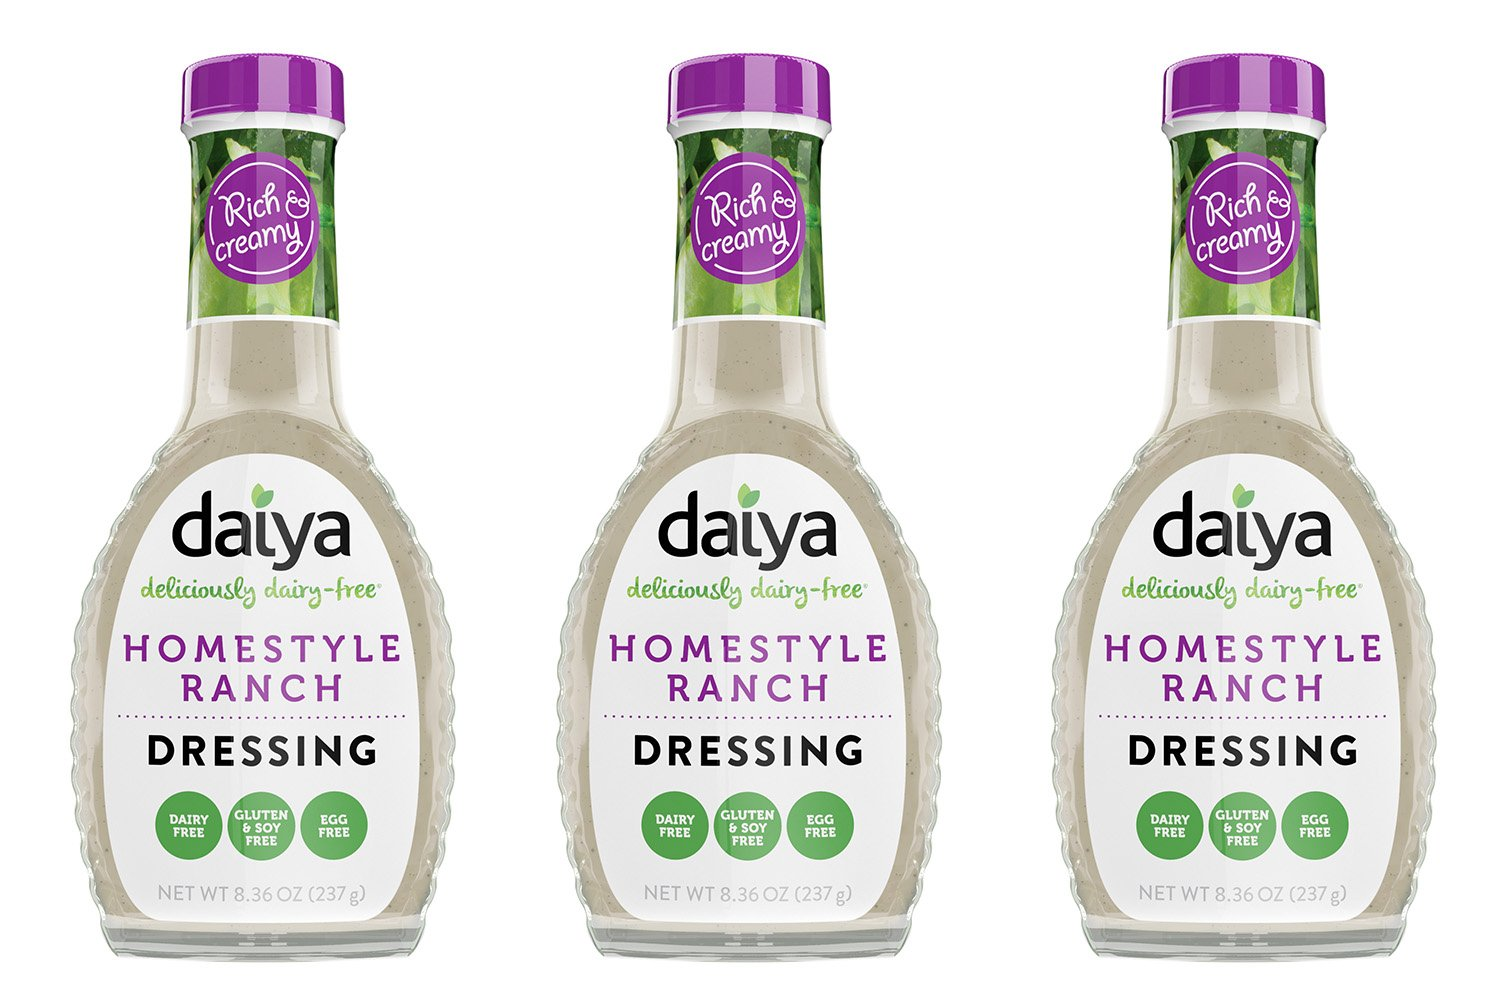 Daiya Homestyle Ranch Dressing, Dairy Free :: Rich & Creamy Salad Dressing :: Vegan, Gluten Free, Soy Free, Egg Free, Non GMO :: Deliciously Zesty Flavor For Pouring or Dipping, 8.36-Oz. (3 Pack)